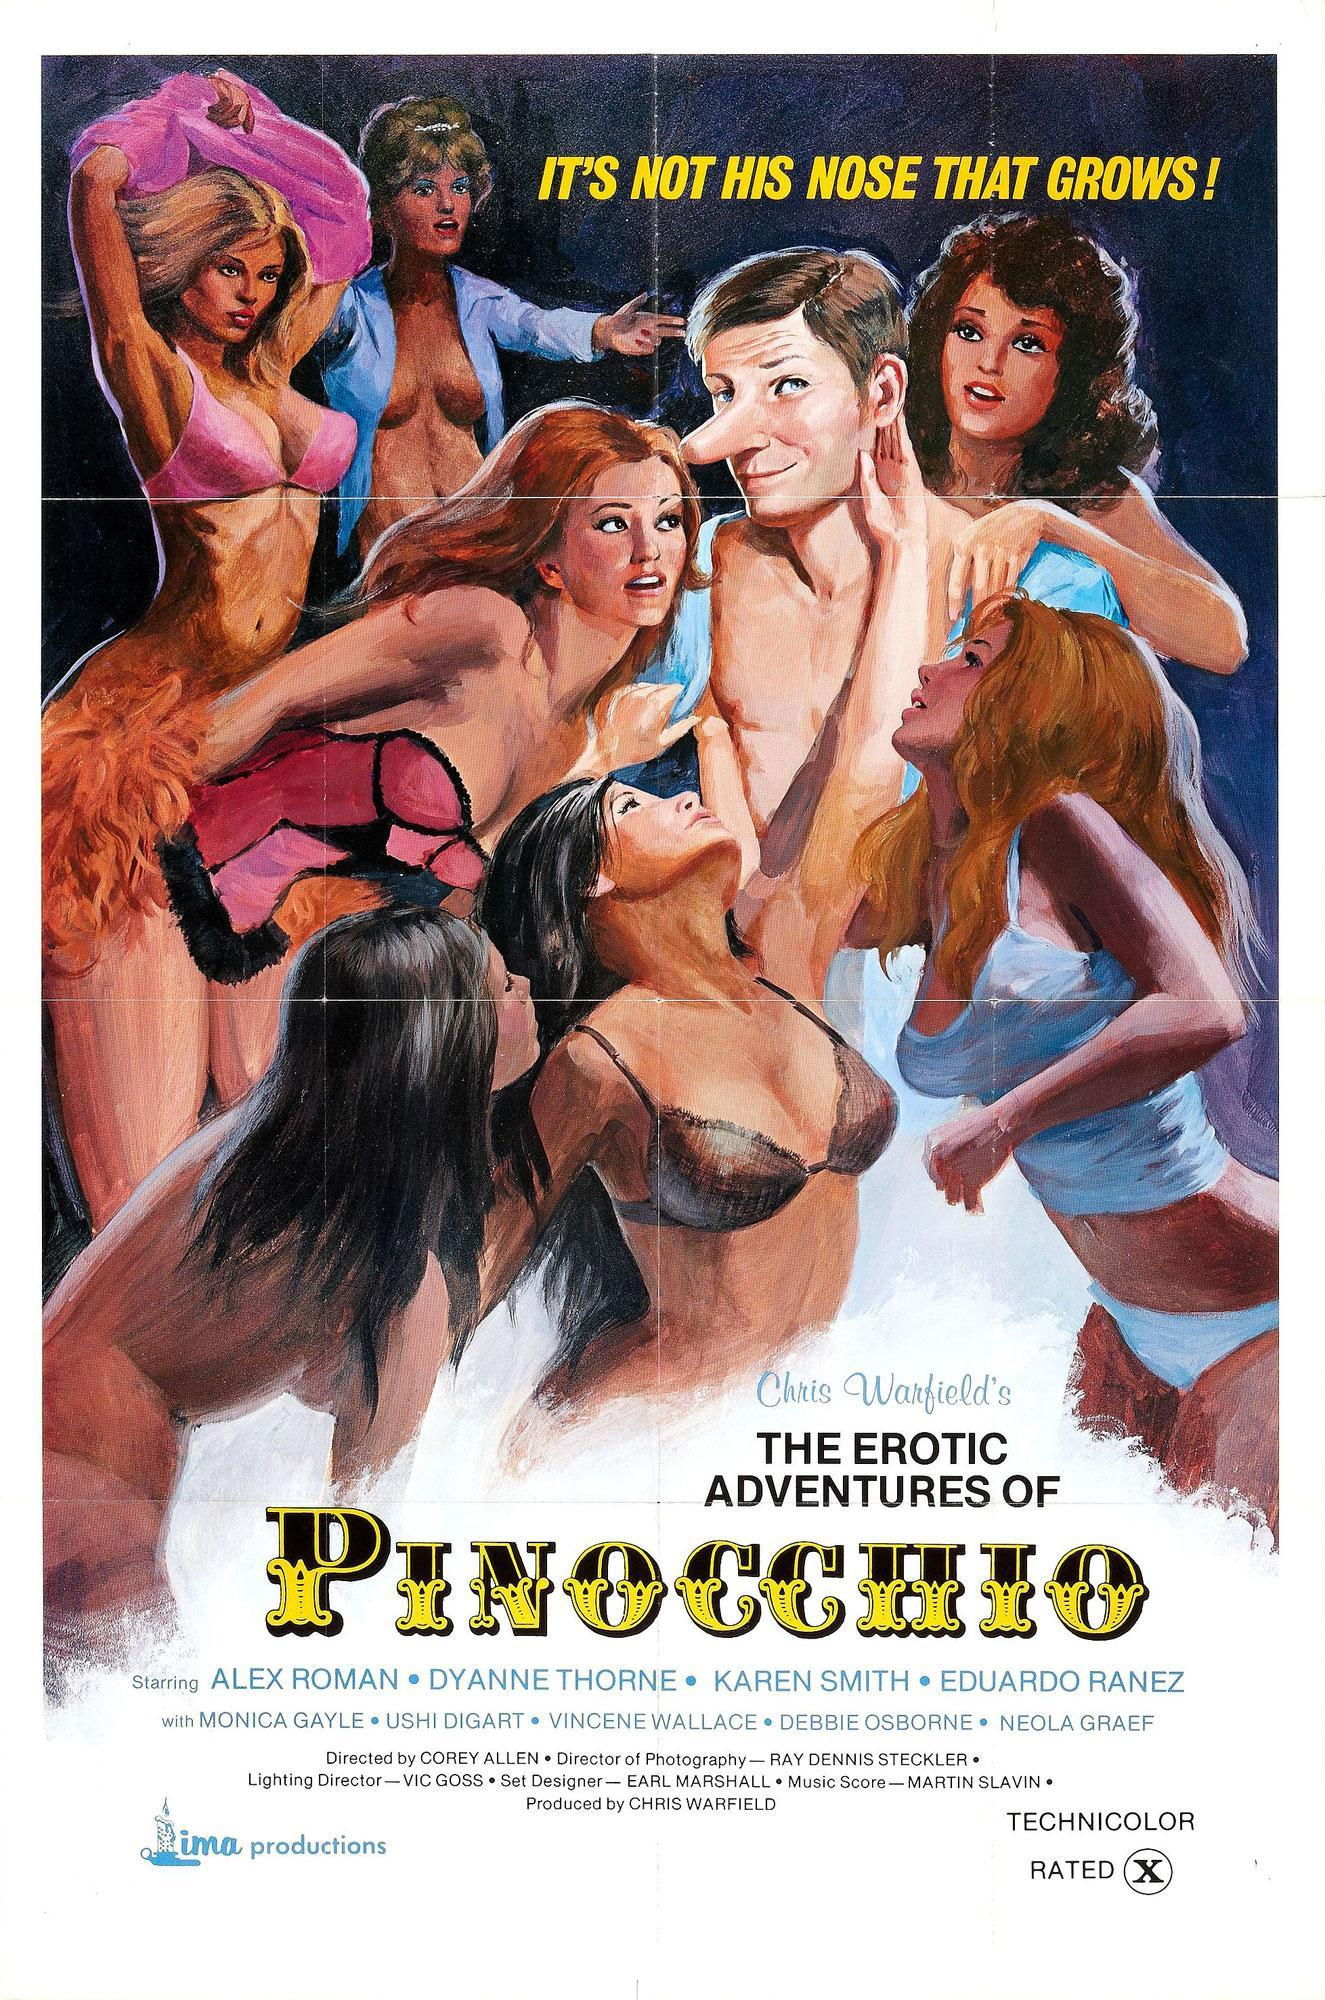 Xerotic_adventures_of_pinocchio_poster_01